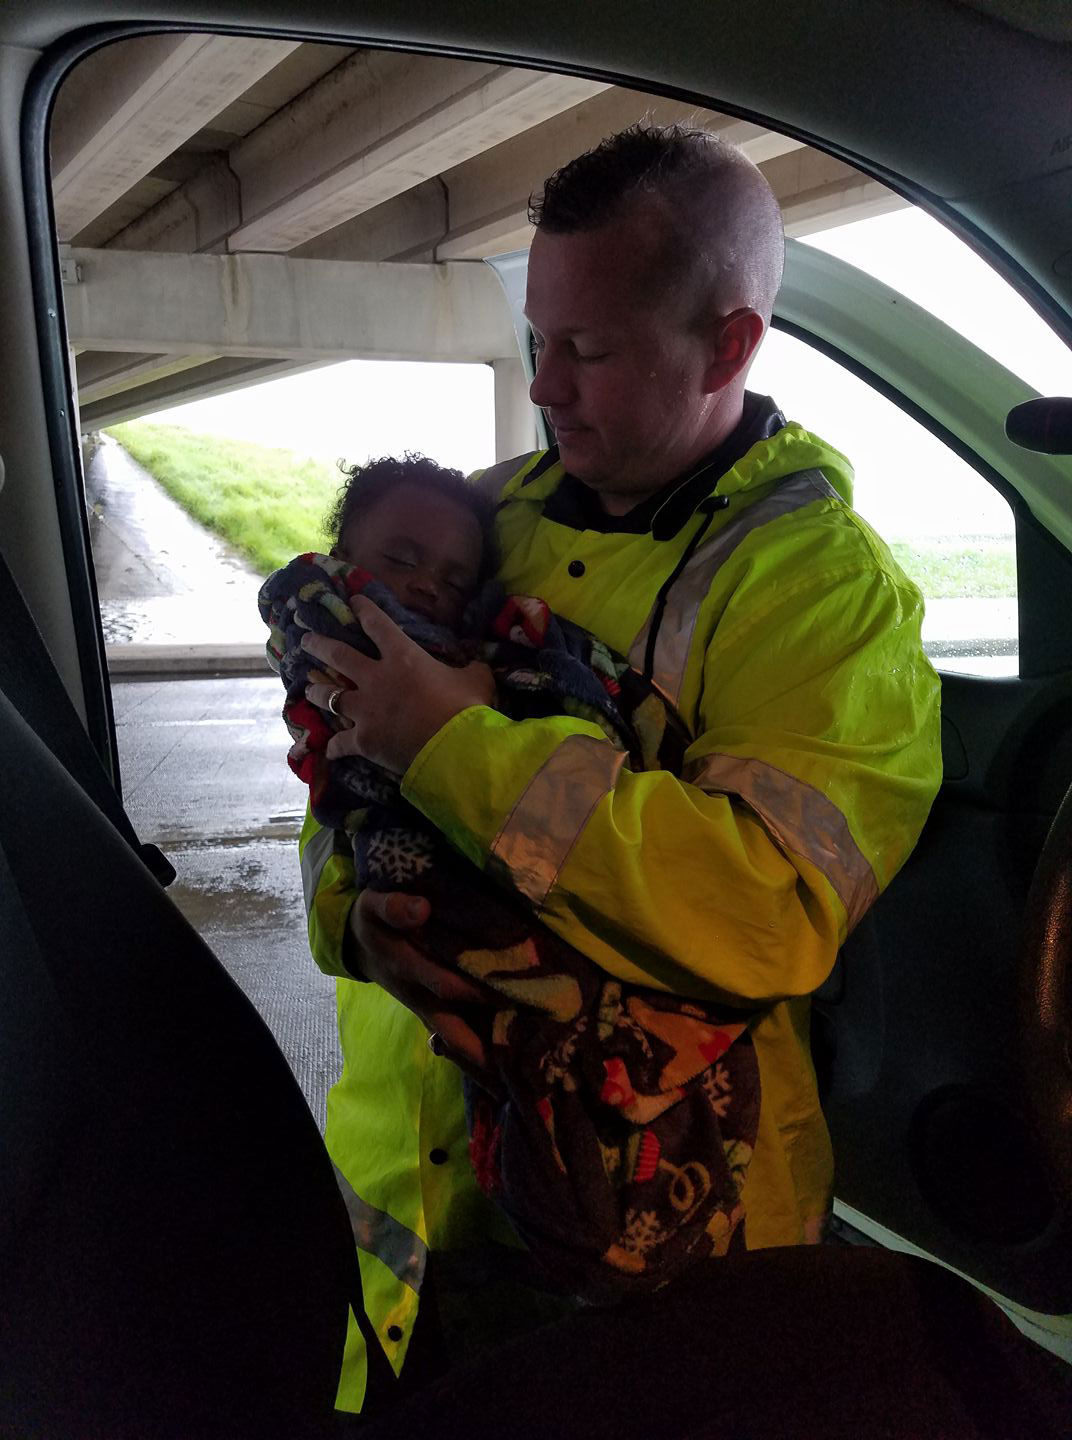 <div class='meta'><div class='origin-logo' data-origin='none'></div><span class='caption-text' data-credit='Constable Christopher Diaz'>Harris County Constable Pct. 2 Christopher E. Diaz posted this photo searching for the mother of the baby found in Houston. They have since been reunited.</span></div>